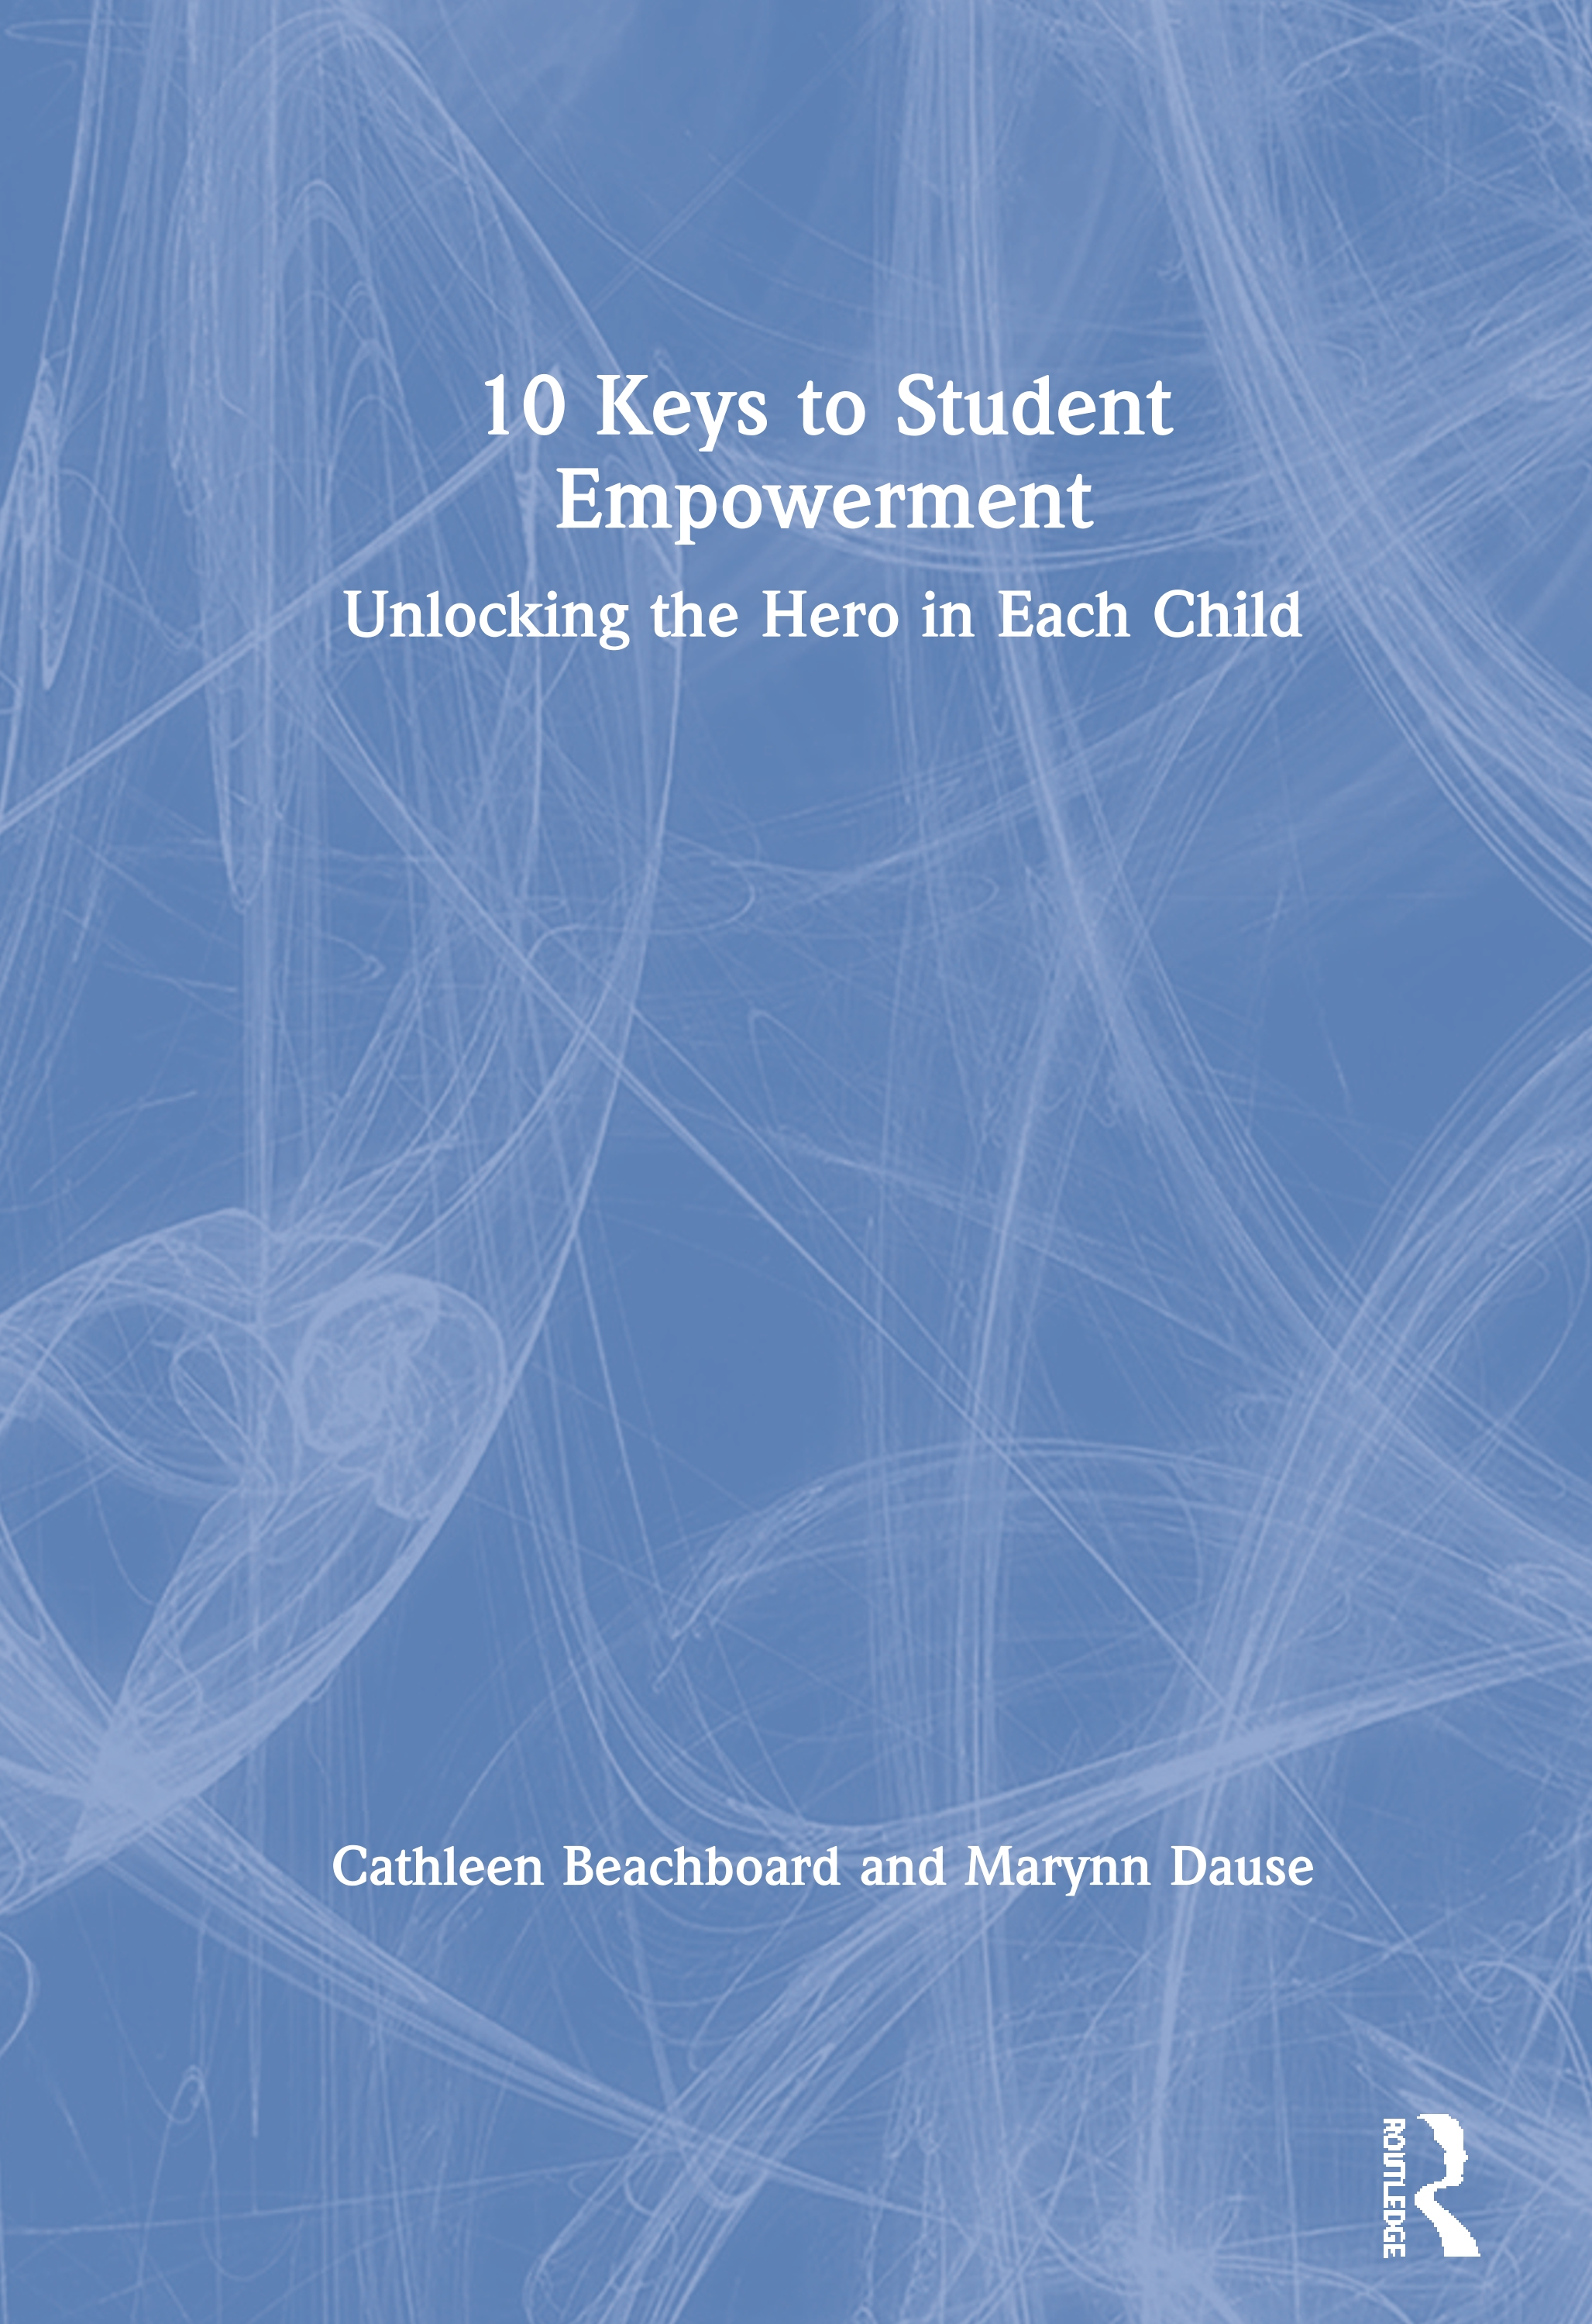 10 Keys to Student Empowerment: Unlocking the Hero in Each Child book cover